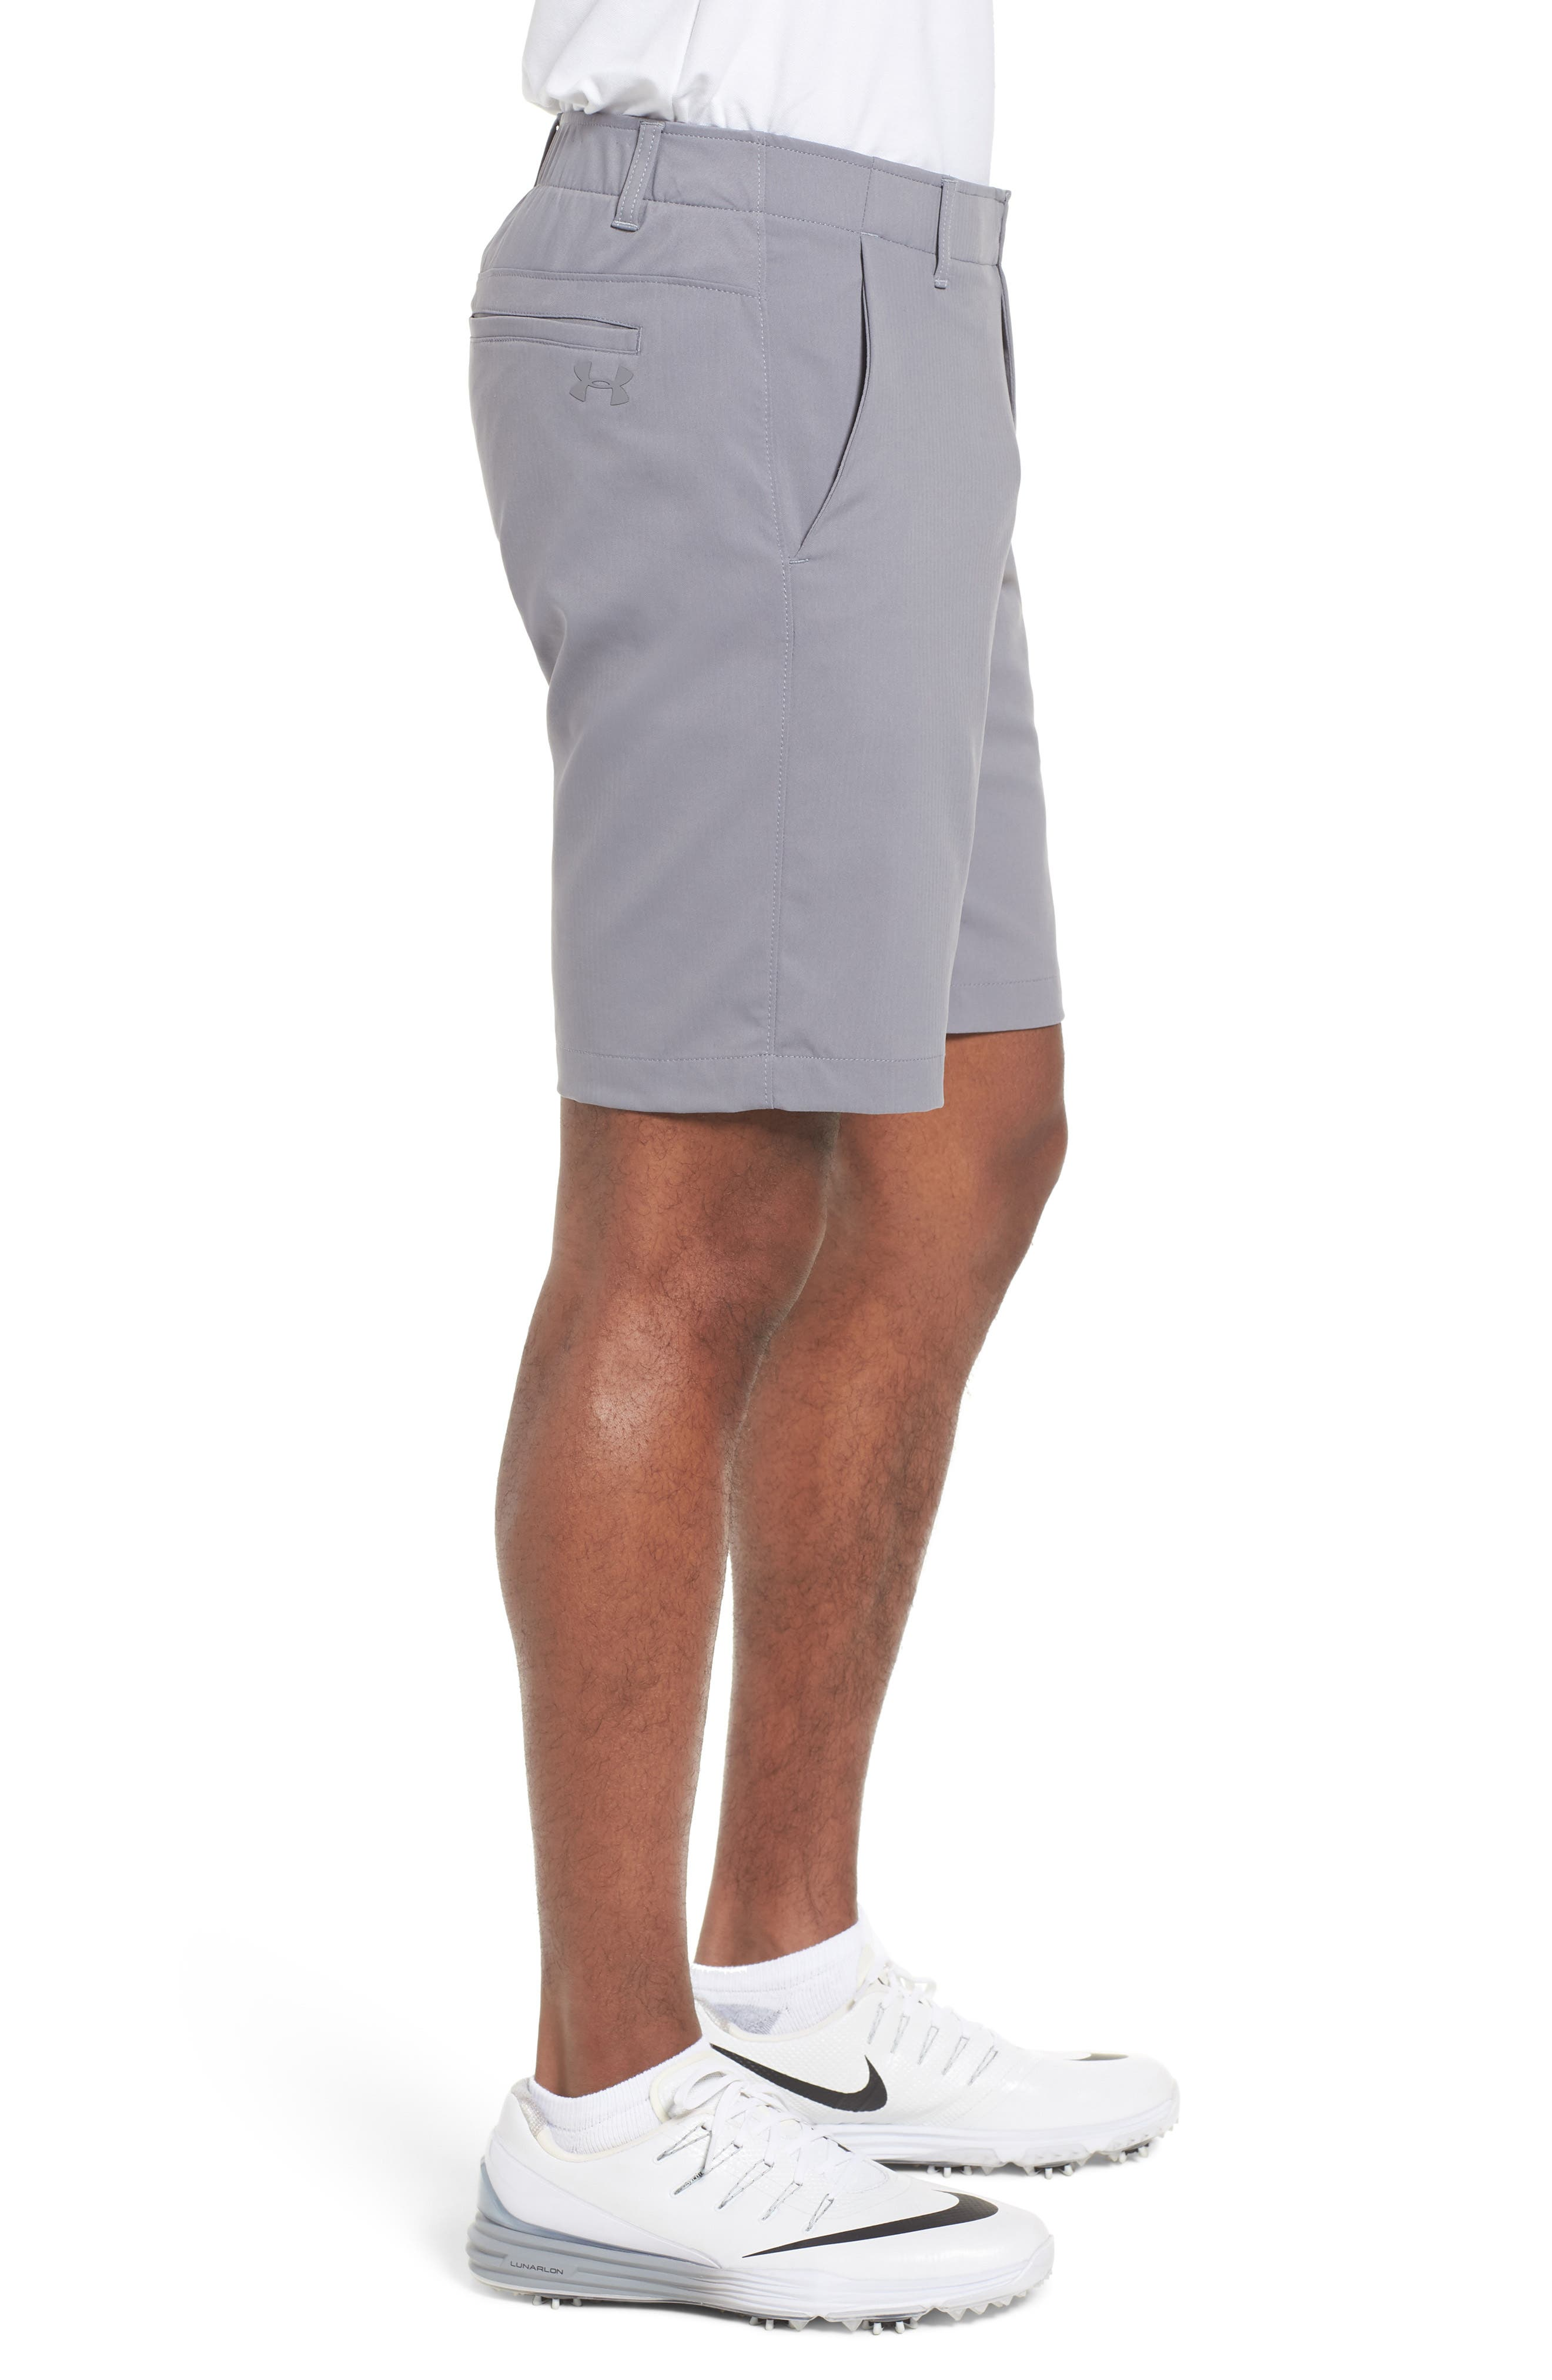 Takeover Regular Fit Golf Shorts,                             Alternate thumbnail 3, color,                             Zinc Grey